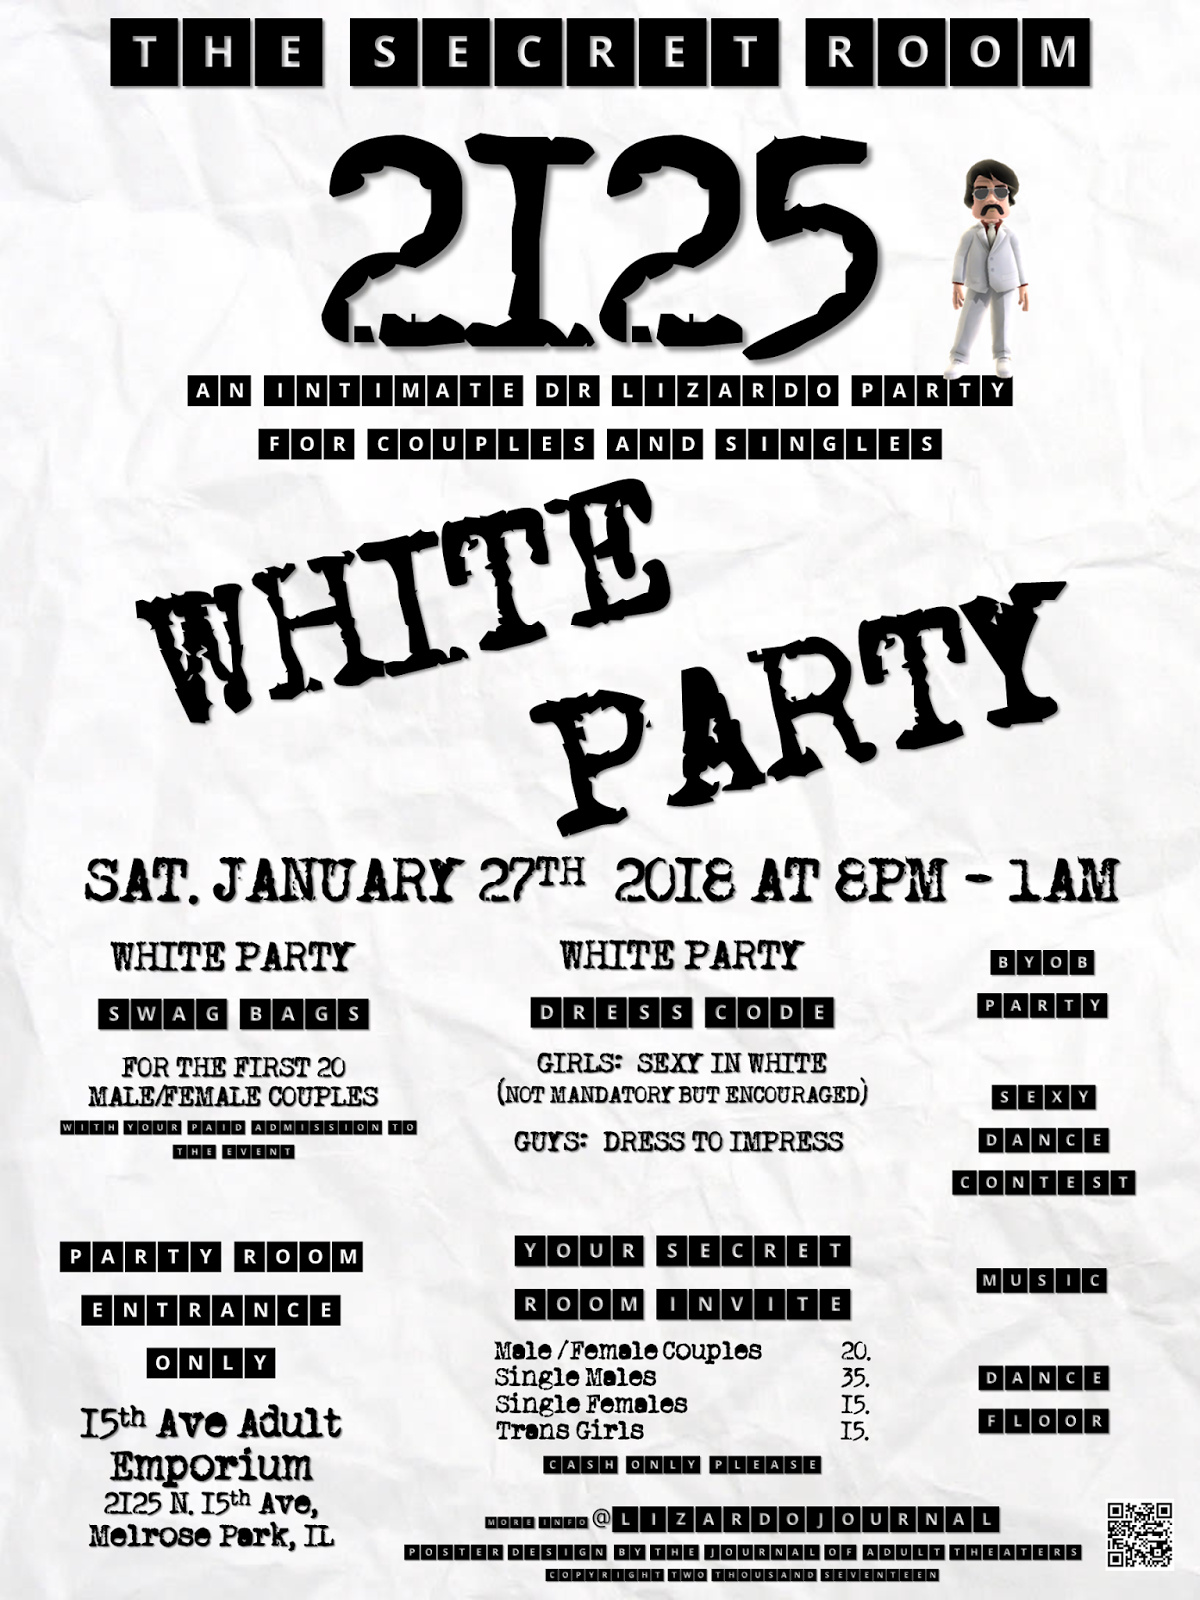 The Secret Room 2125: White Party at 15th Ave. Adult Theater Party Room in Chicago!